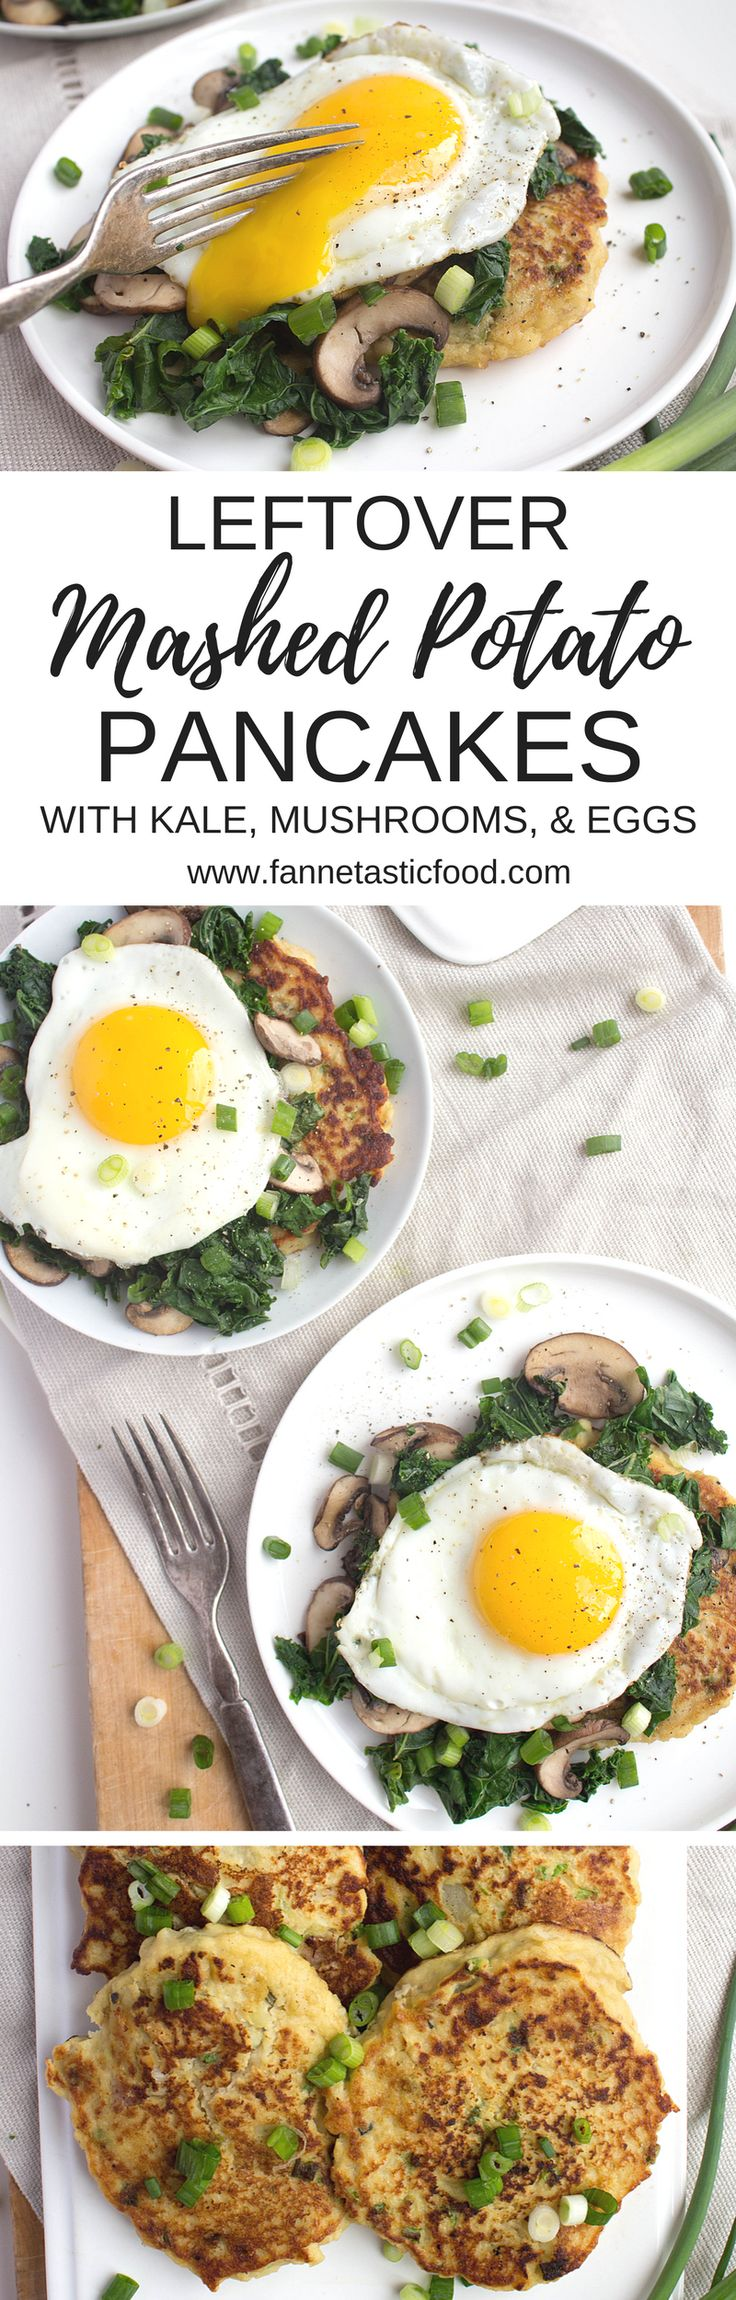 Wondering what to do with leftover mashed potatoes? Make these leftover mashed potato pancakes! They're AMAZING topped with kale, mushrooms, and a fried egg - the perfect post-holiday breakfast!